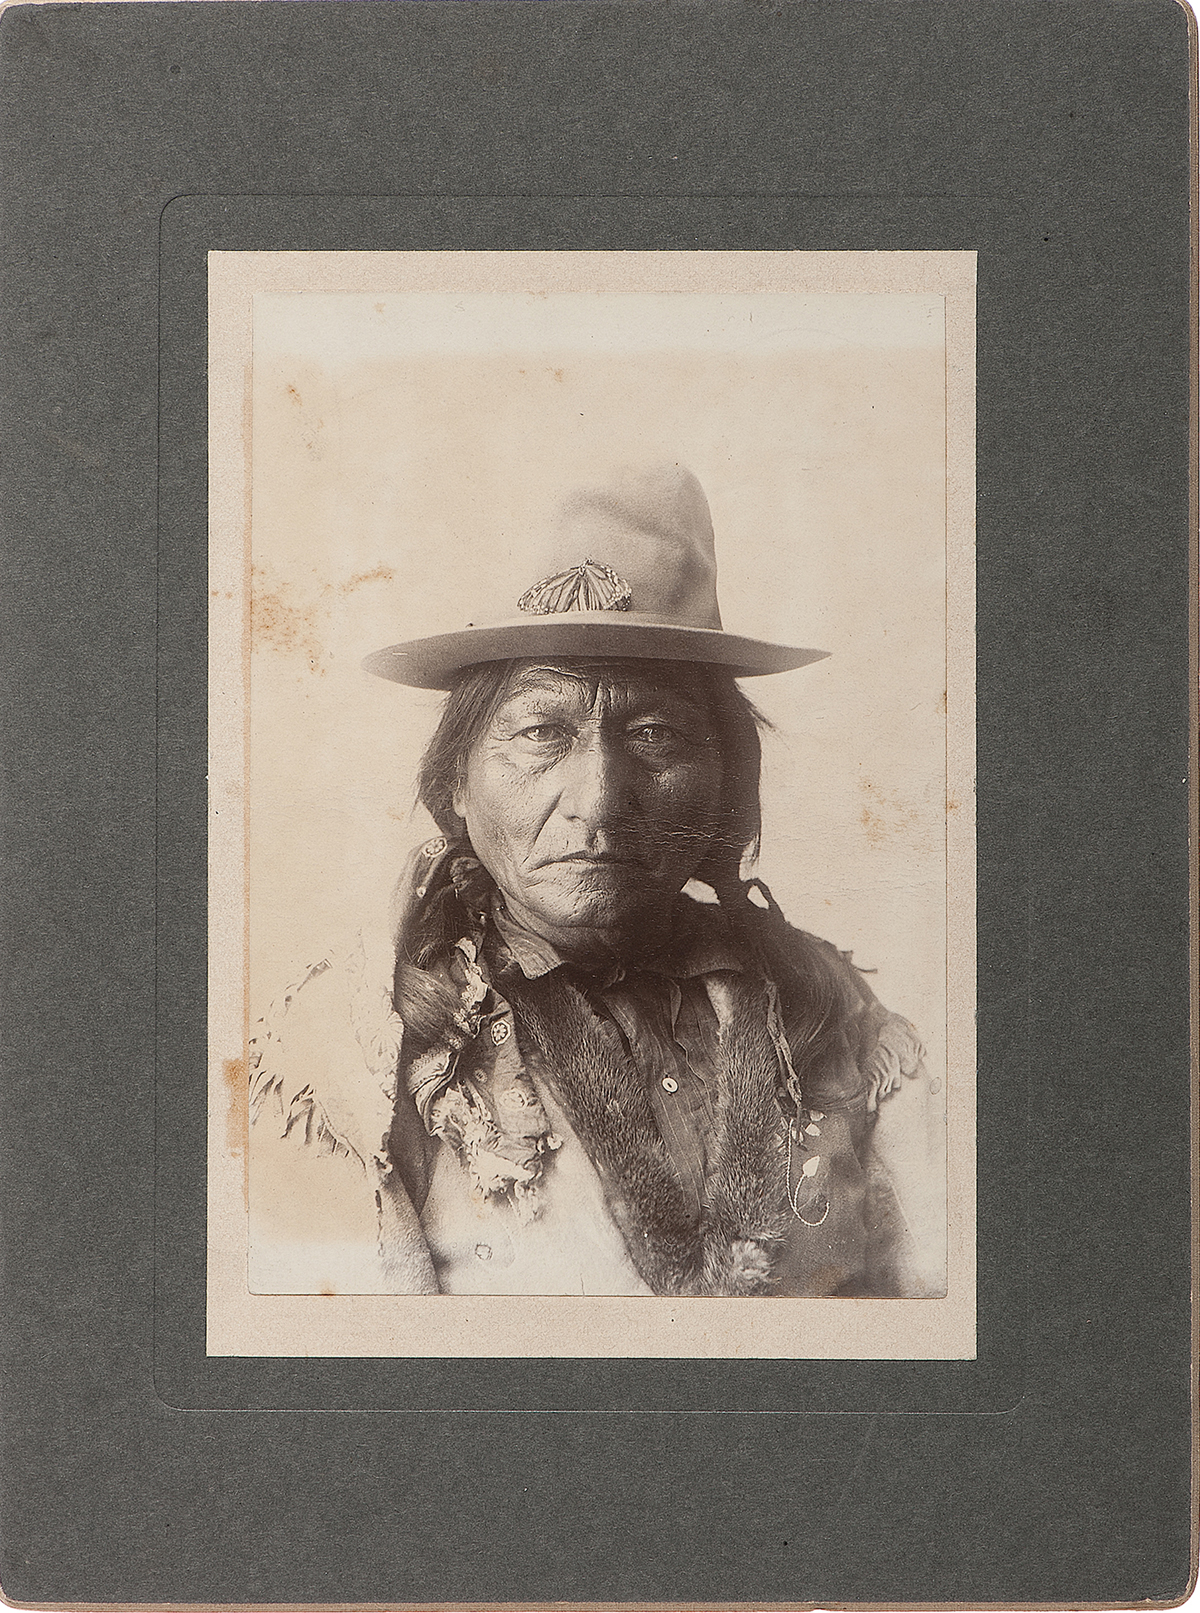 Sitting Bull 1883 Cowans Auctions Nov 17 20....jpg